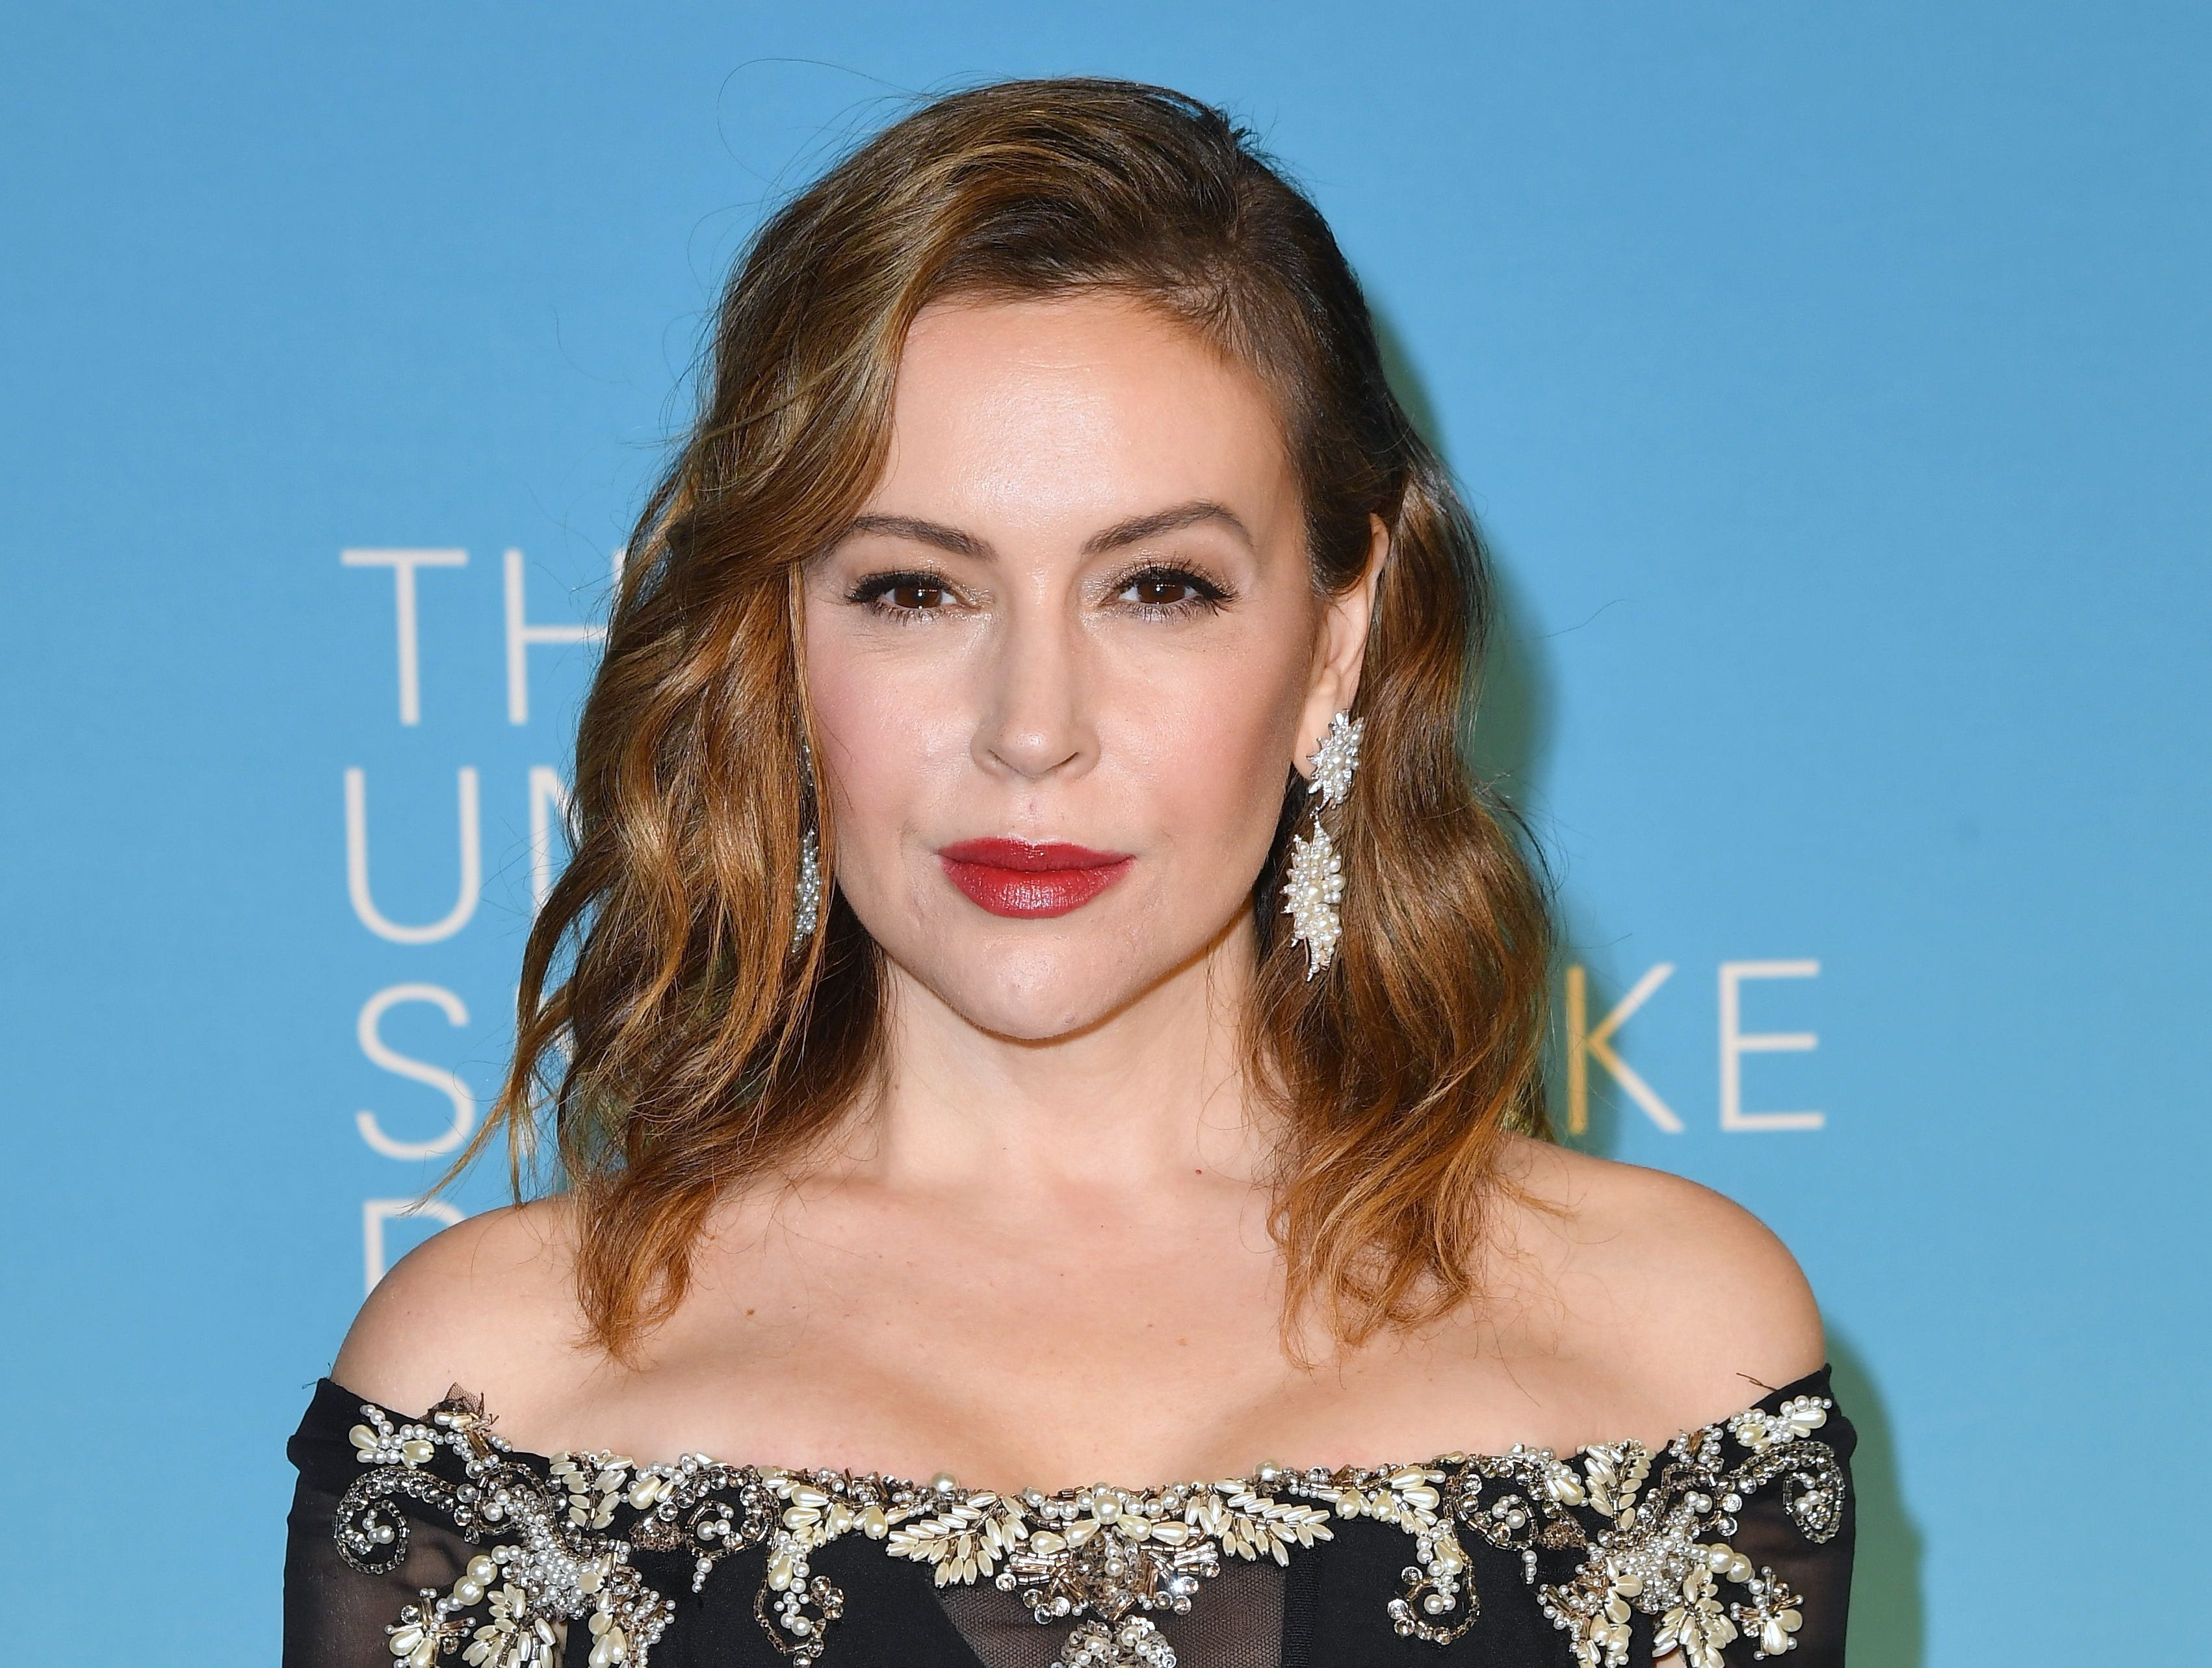 Actress Alyssa Milano attends the 14th Annual UNICEF Snowflake Ball on November 27, 2018 in New York City. (Photo by Angela Weiss / AFP)ANGELA WEISS/AFP/Getty Images ORIG FILE ID: AFP_1B59GF